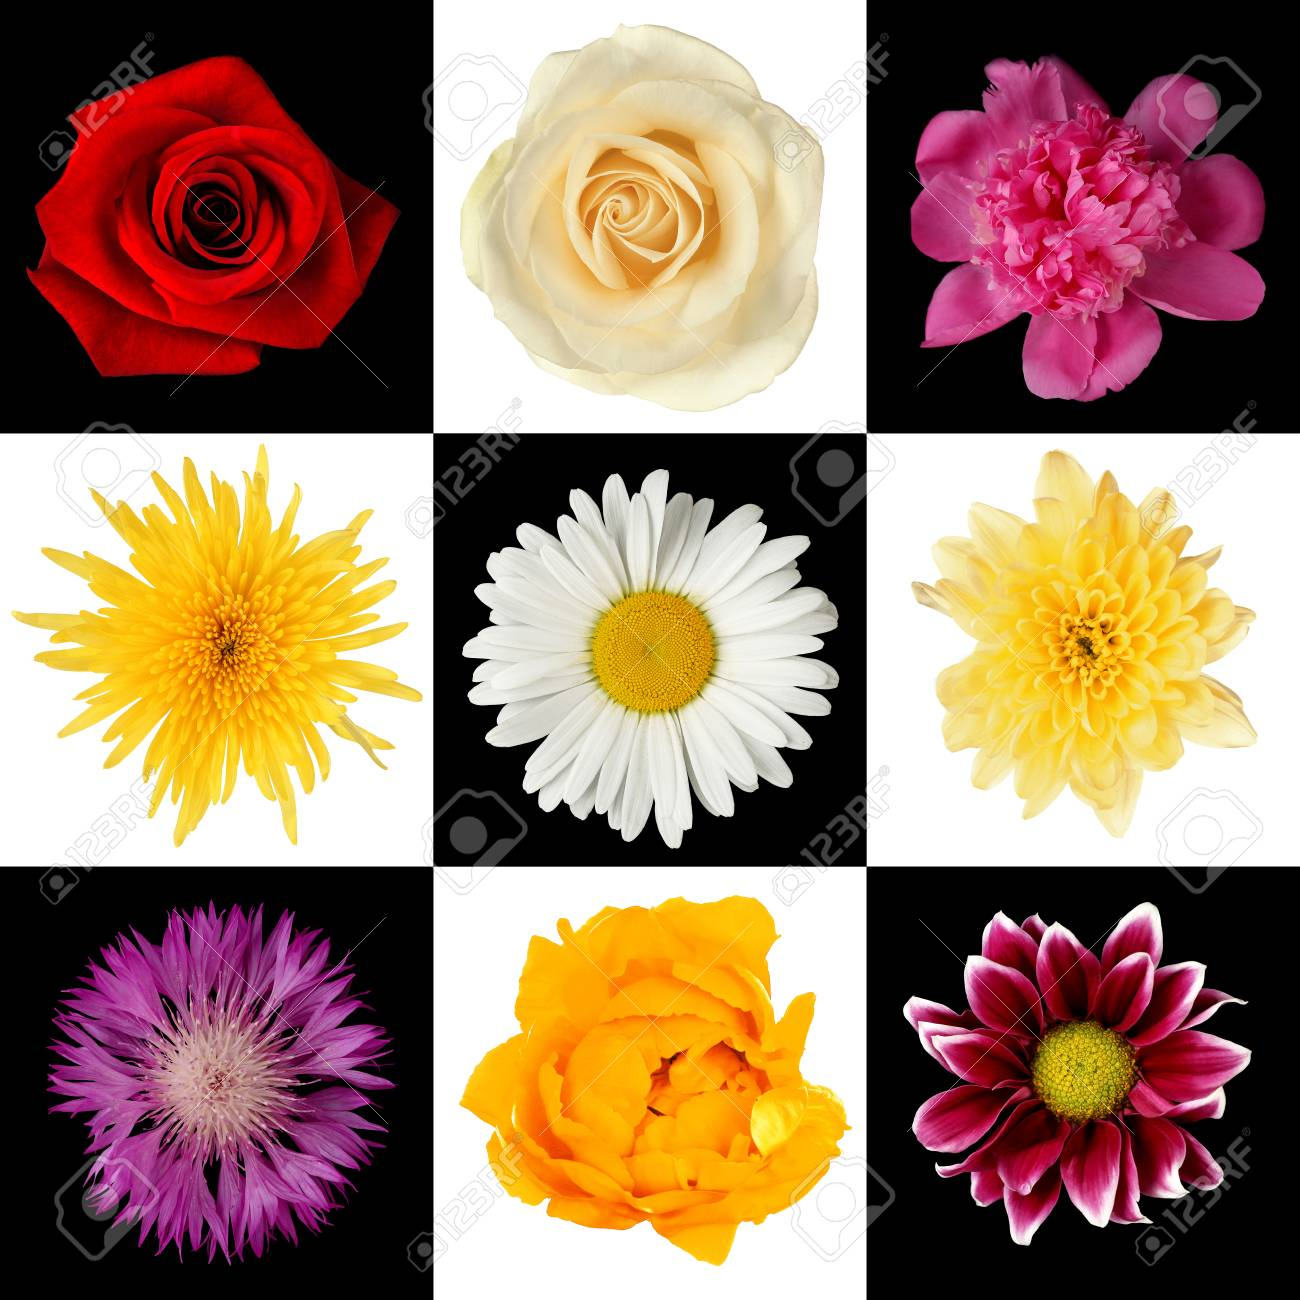 Beautiful flowers different flowers collage stock photo picture beautiful flowers different flowers collage stock photo 68451124 izmirmasajfo